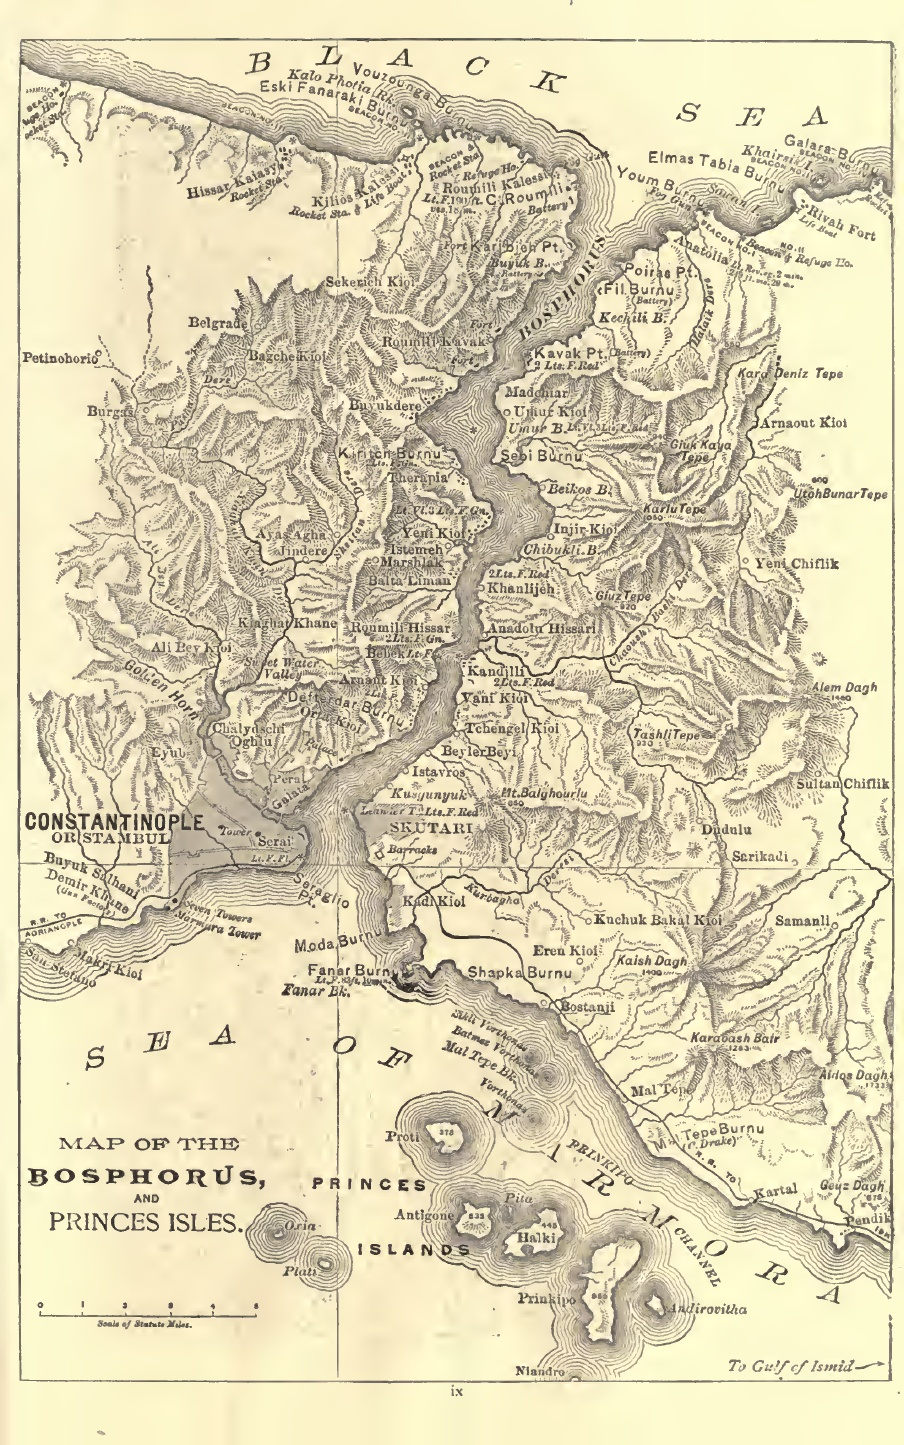 1887 a map of bosphorus